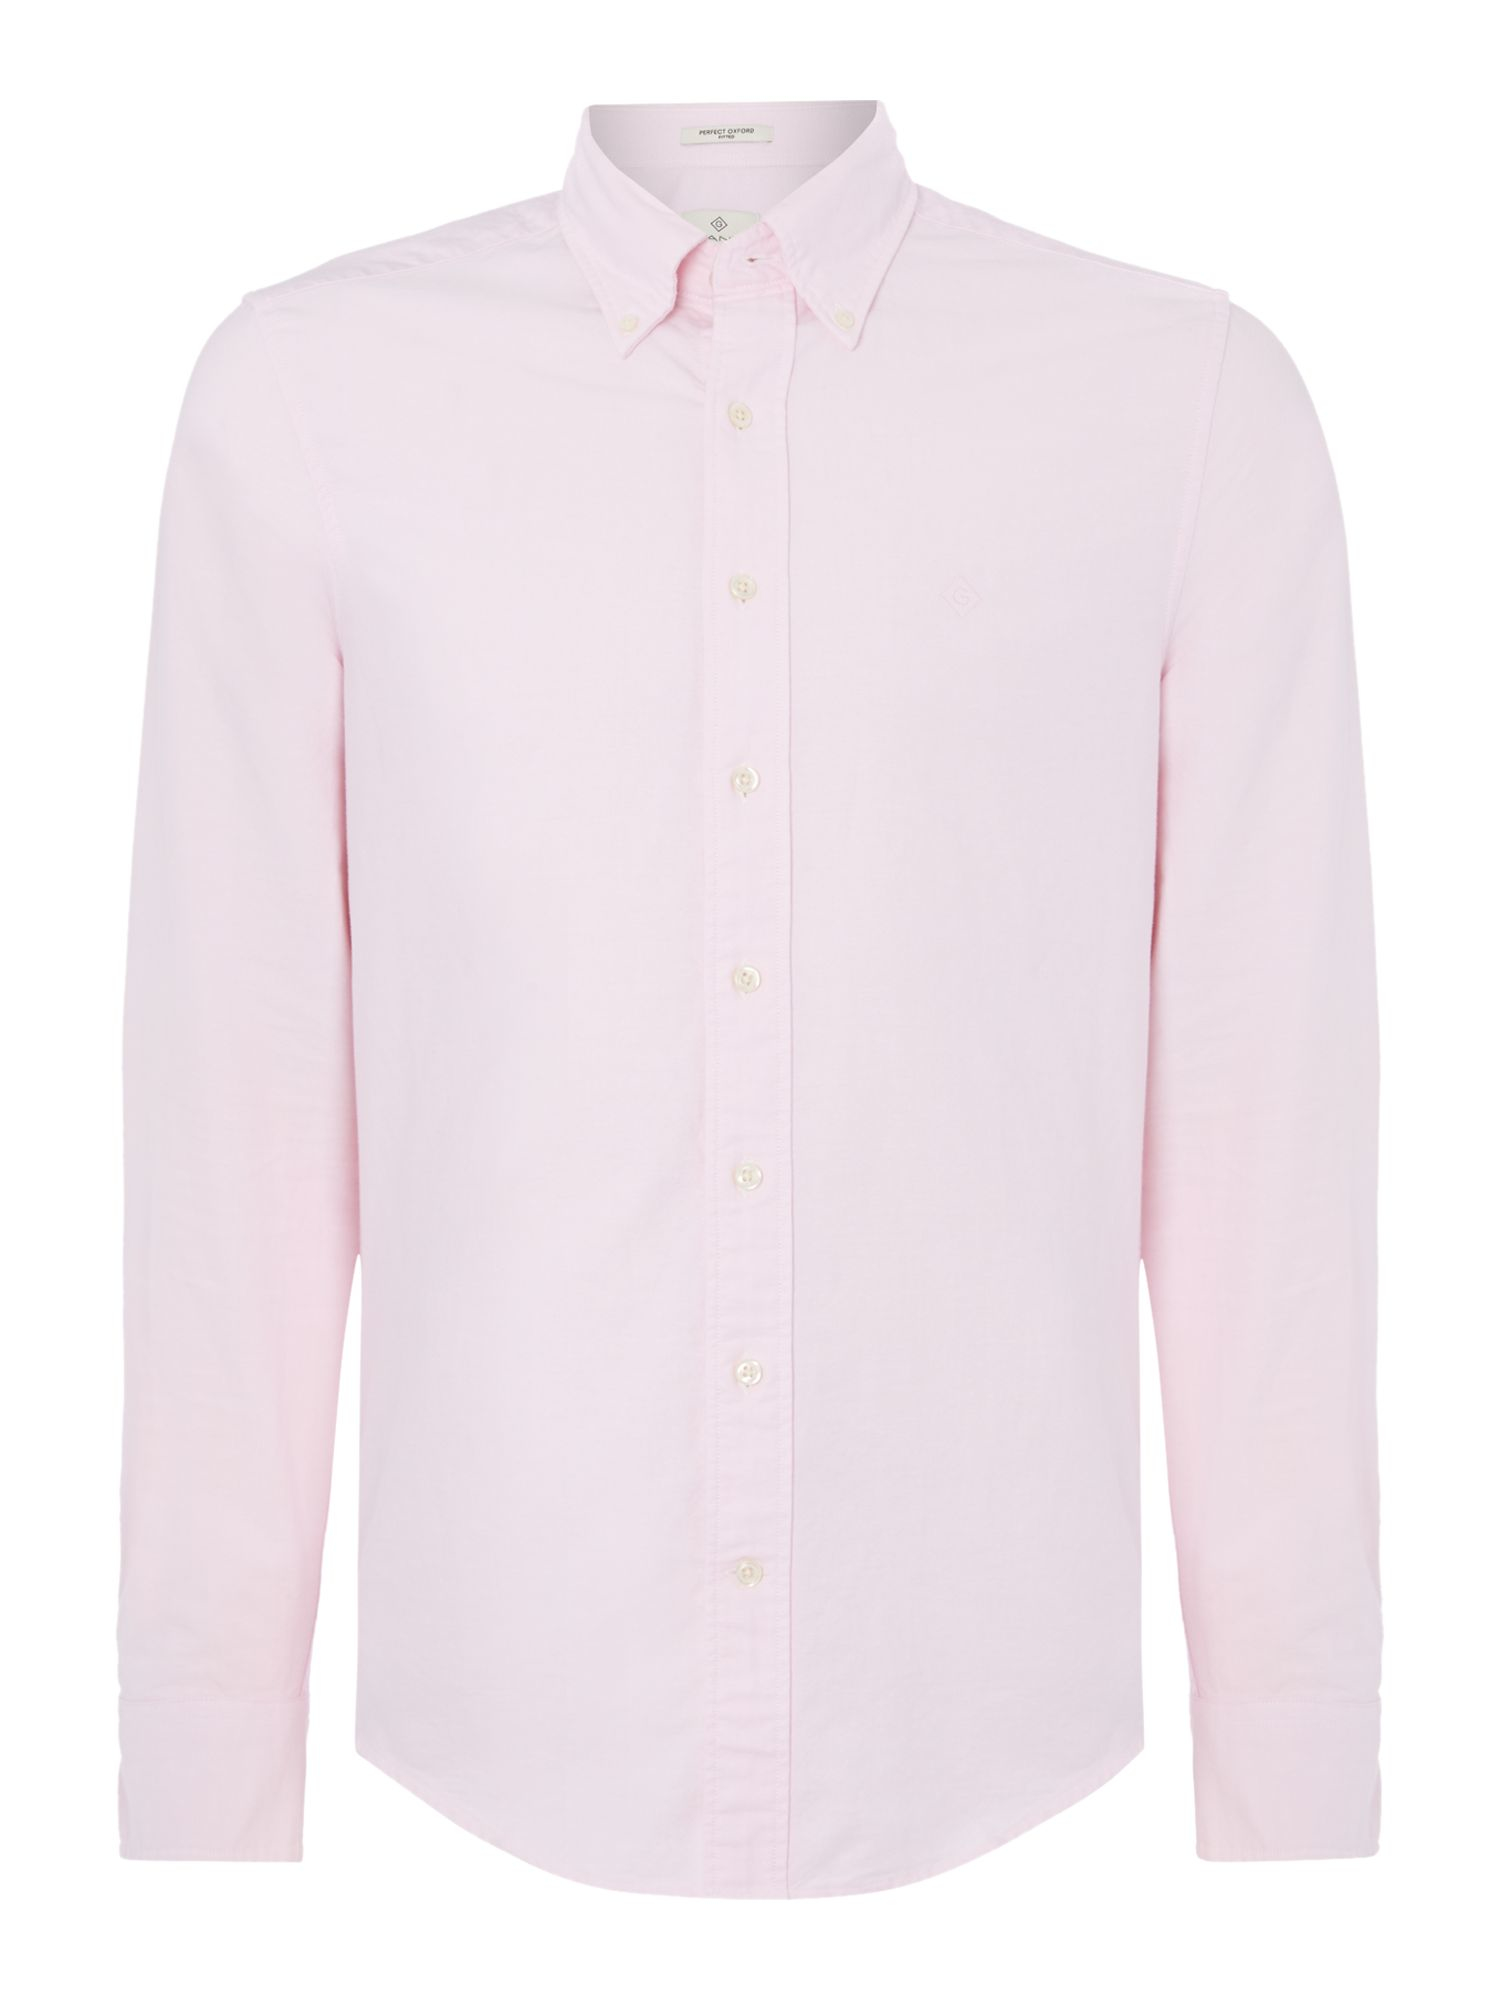 Gant diamond g fully fitted perfect oxford shirt in pink for Pink oxford shirt men